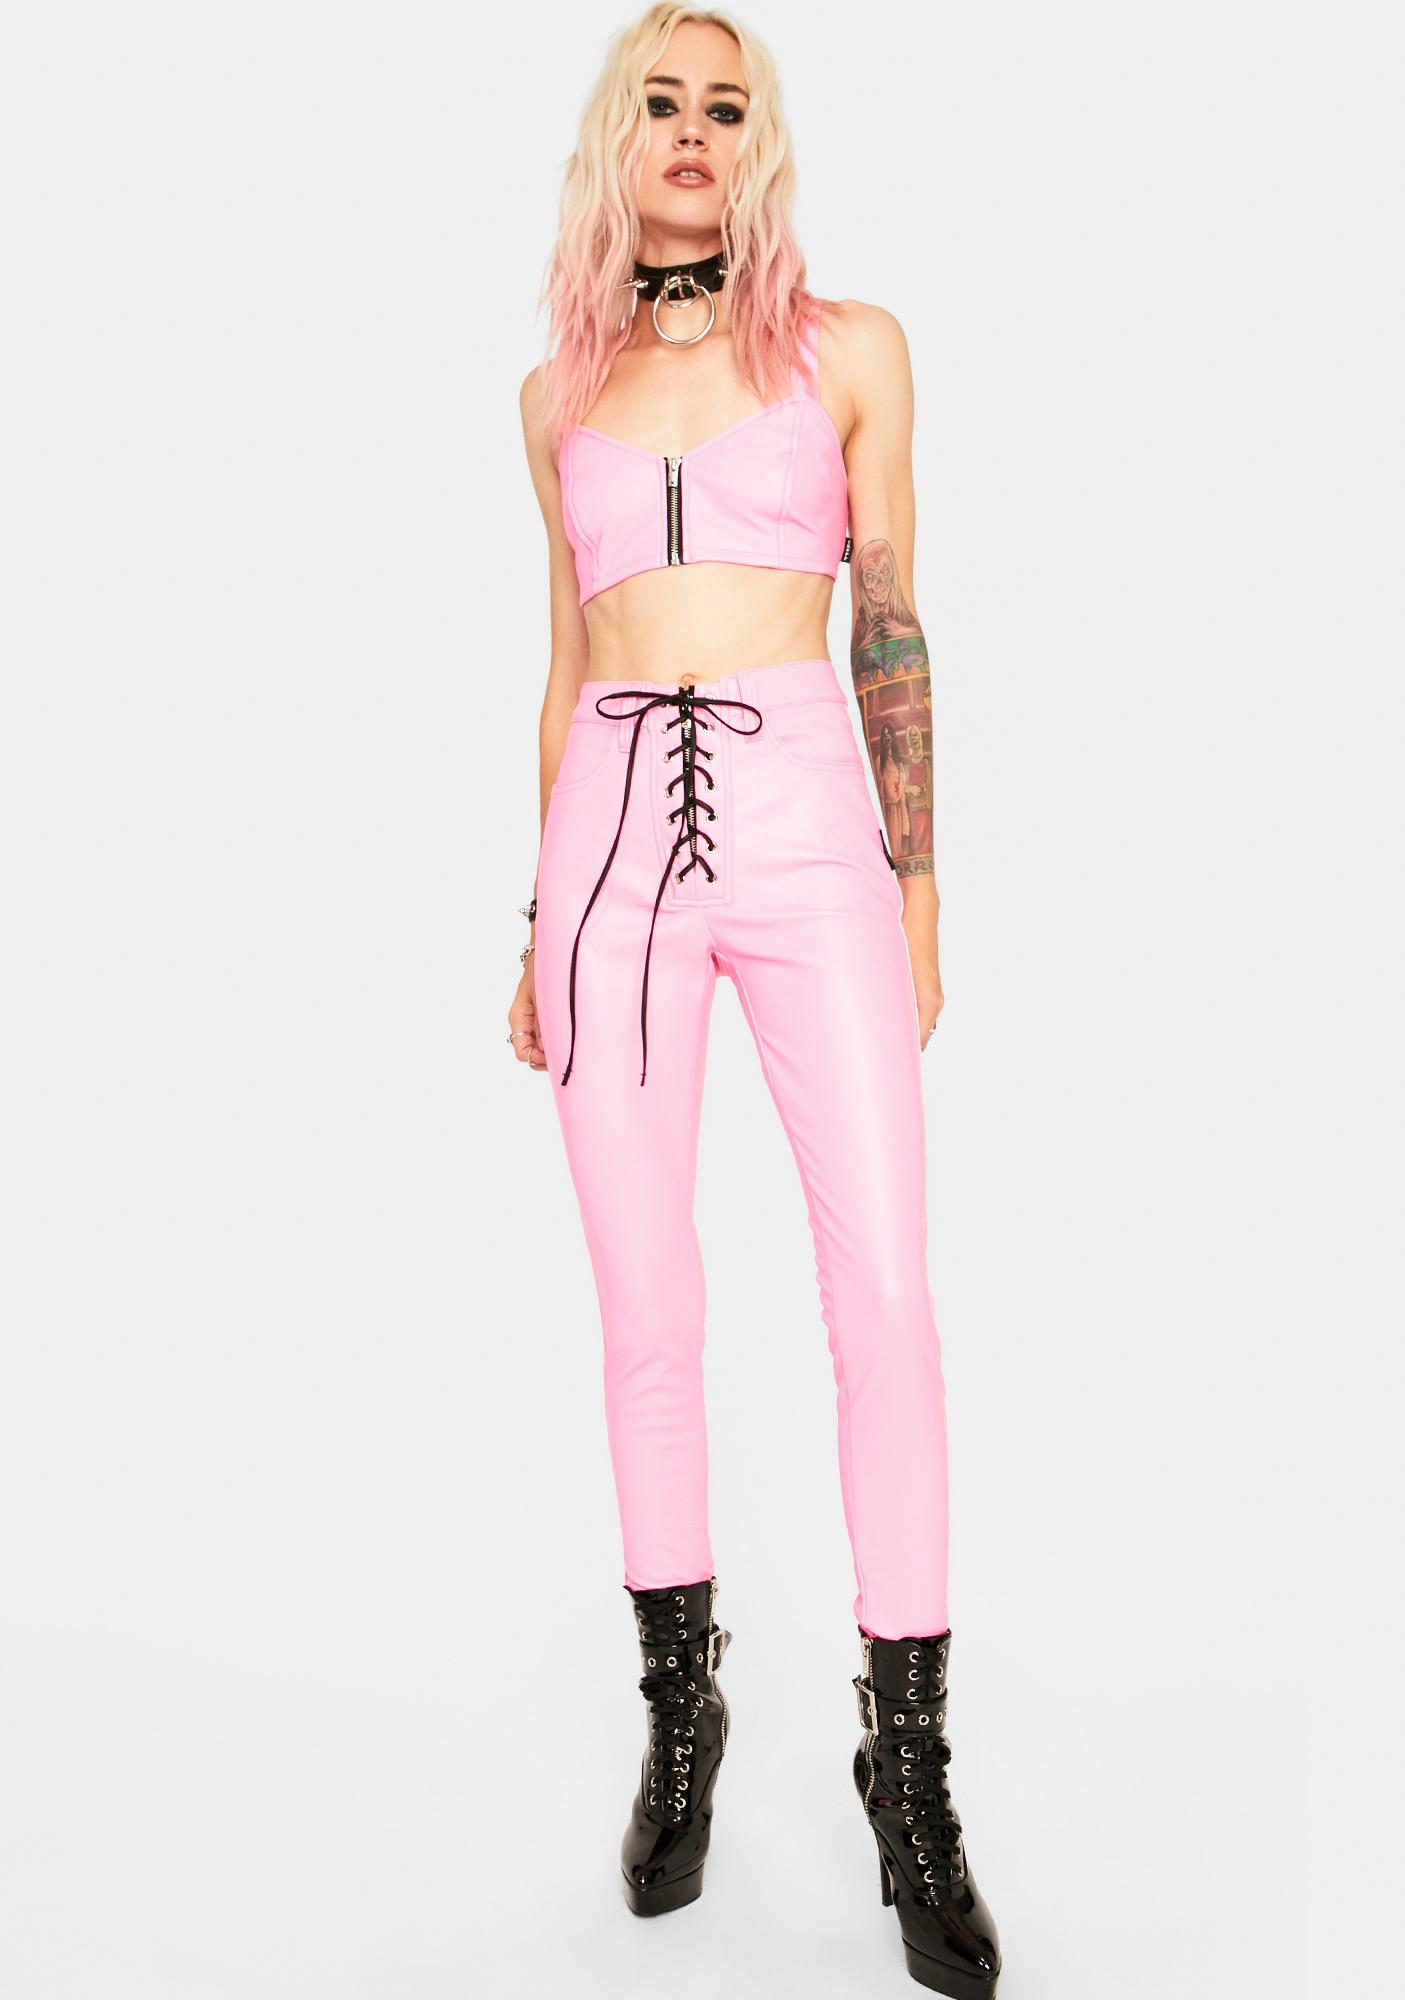 Tripp NYC Pink Bustier Top